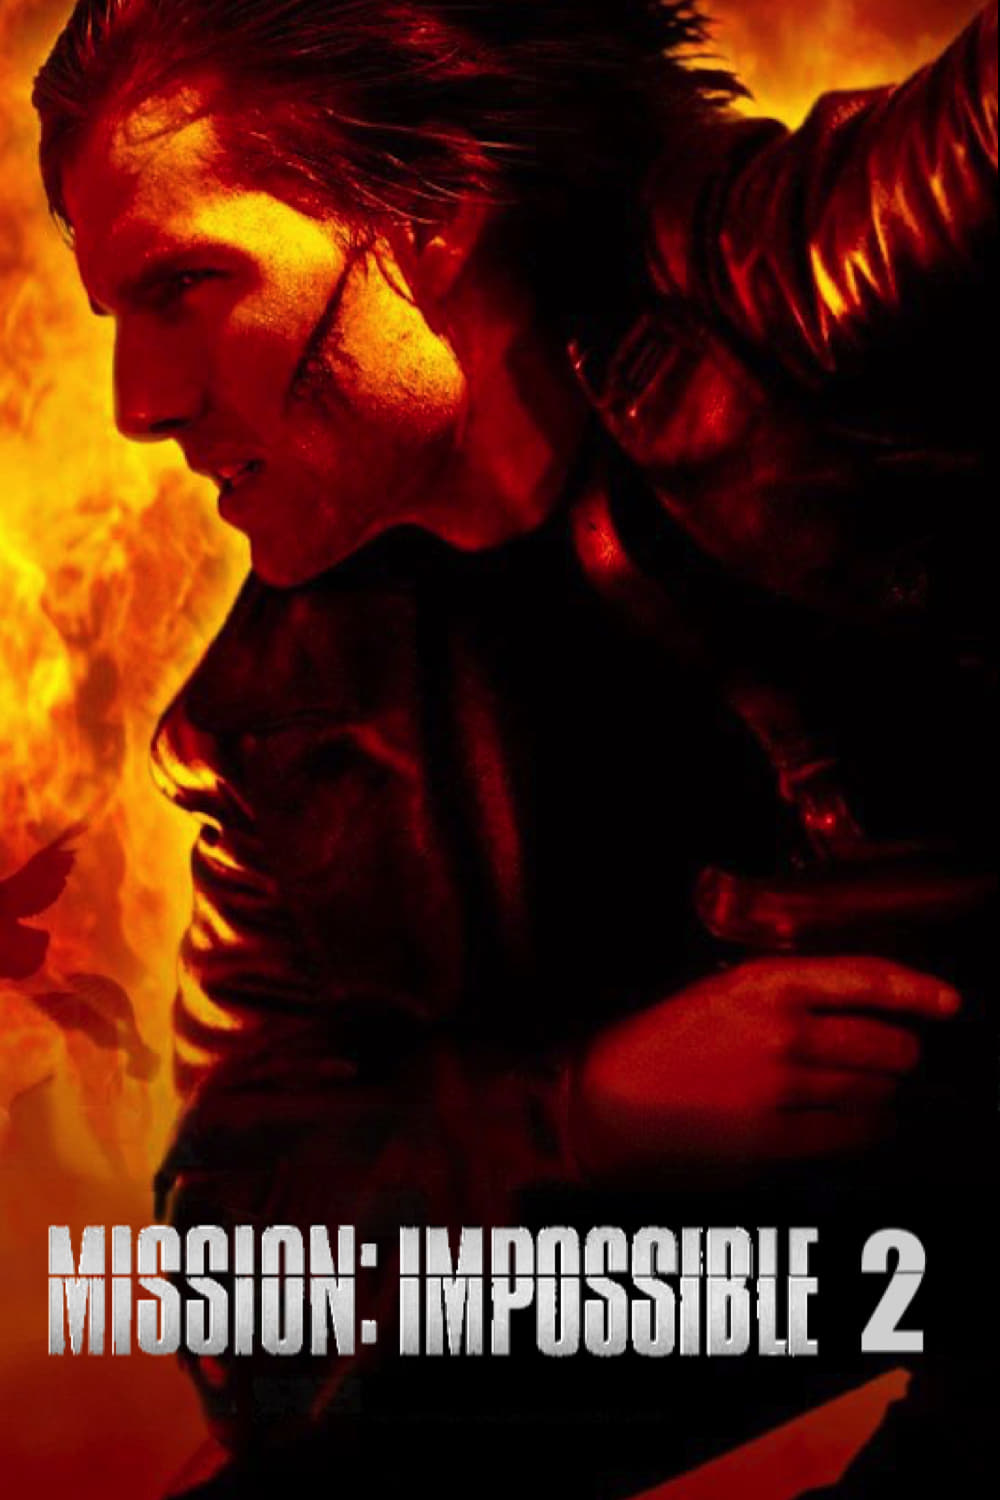 Mission impossible 2 Eng